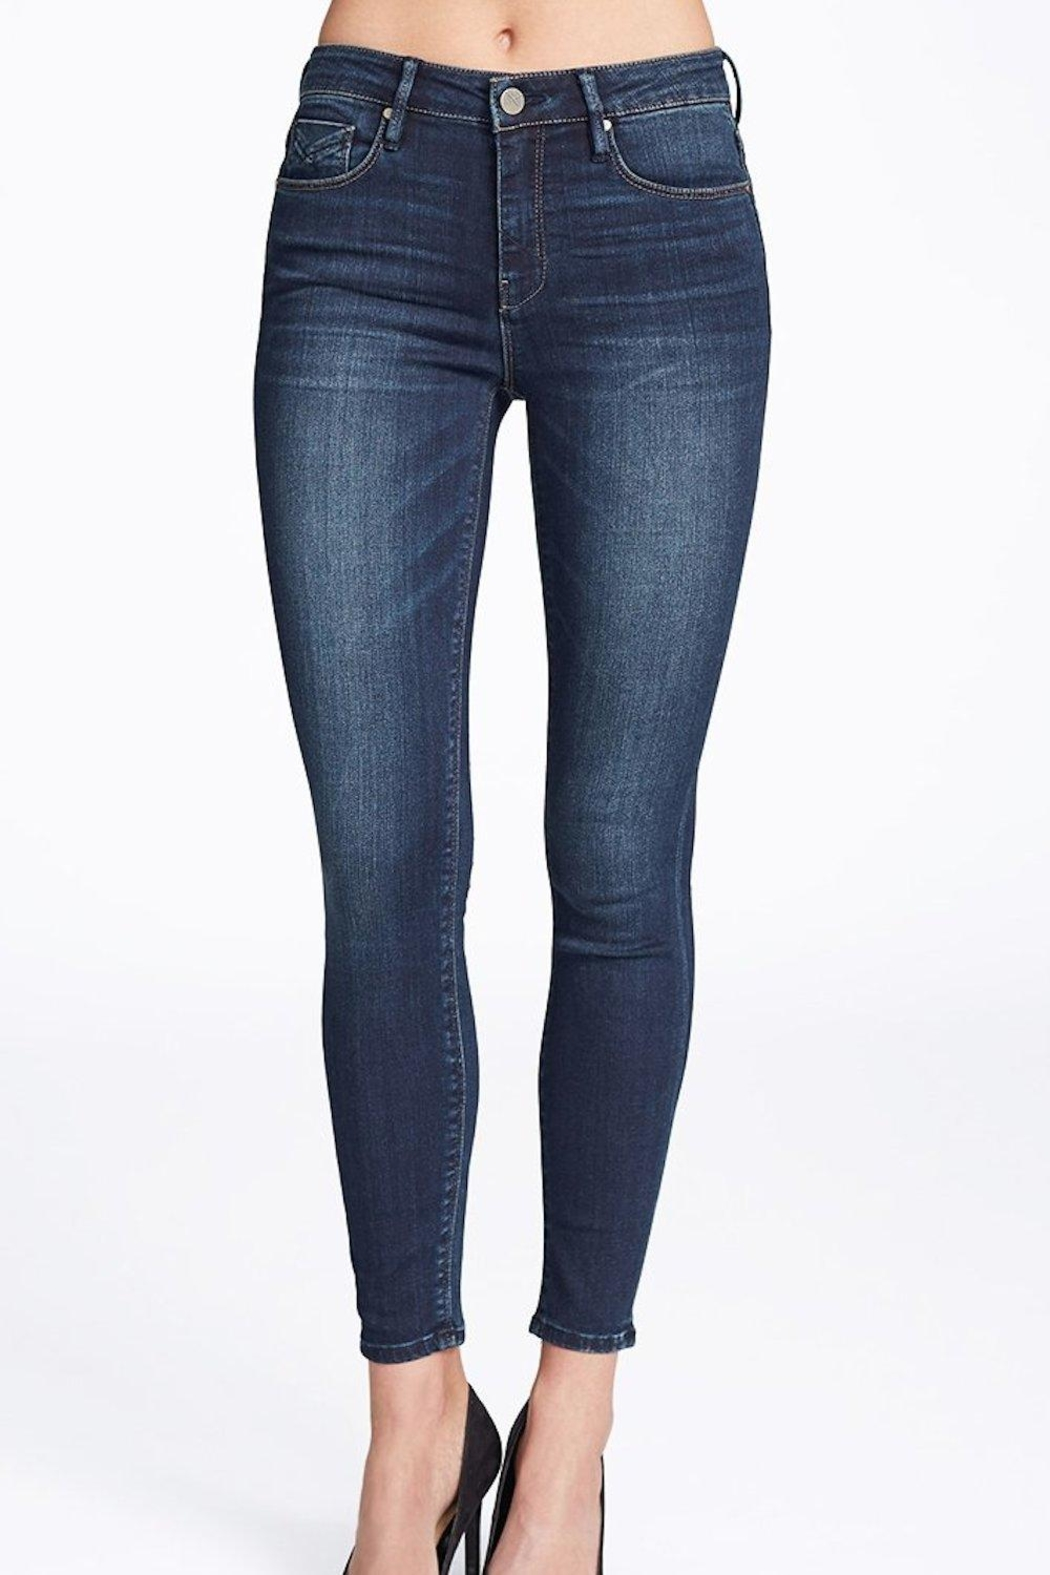 Unpublished Kora Mid-Rise Jeans - Front Cropped Image